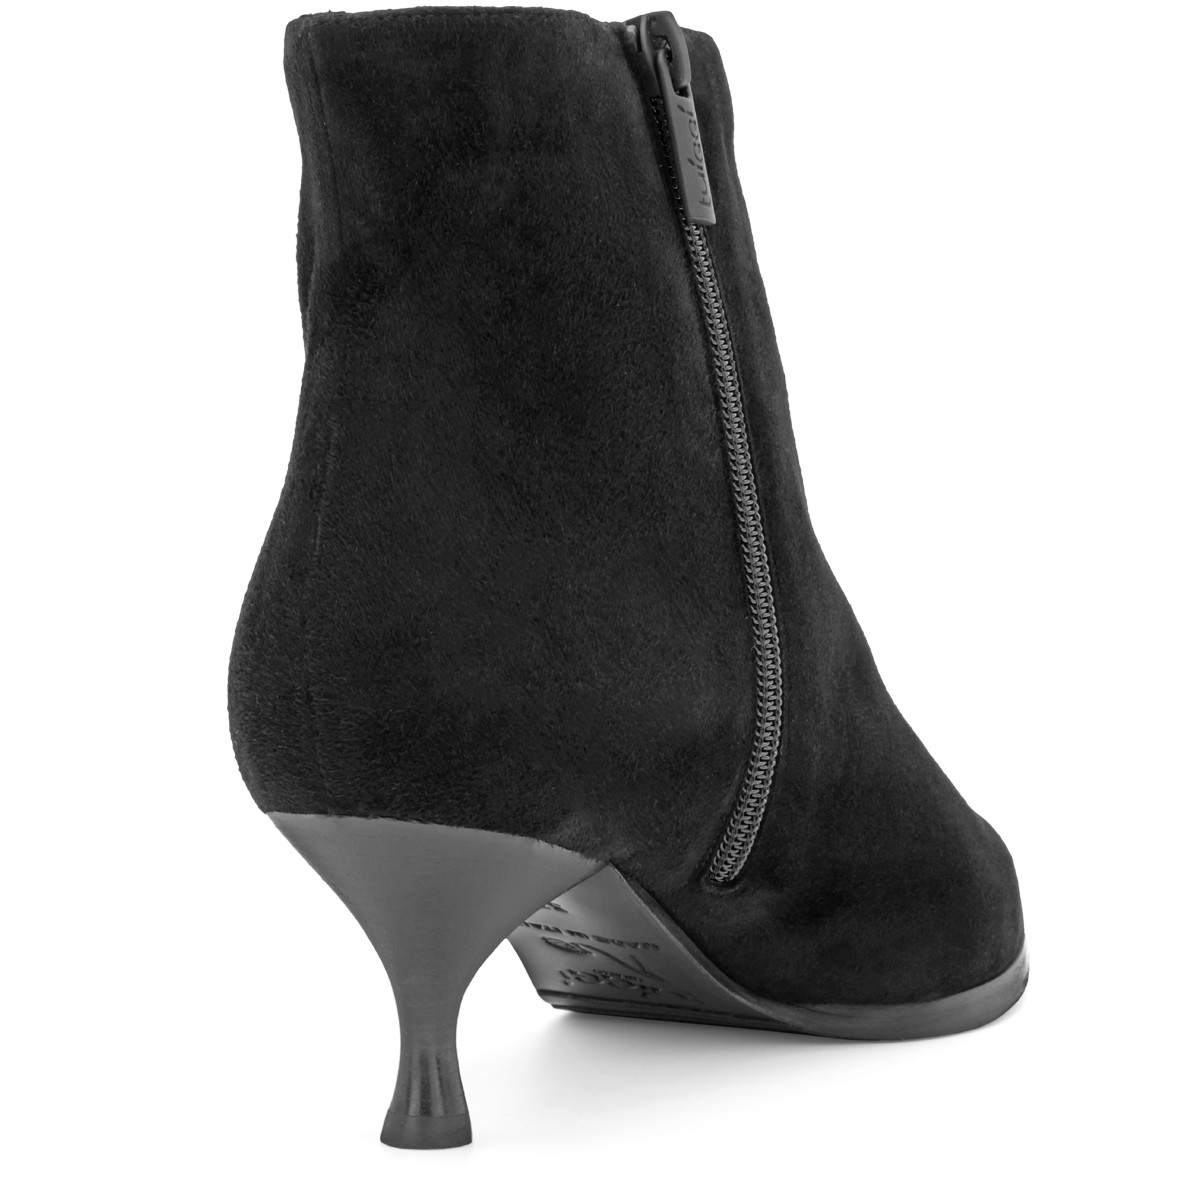 BLACK SUEDE STYLISH WOOL FUR LINED ANKLE BOOTS